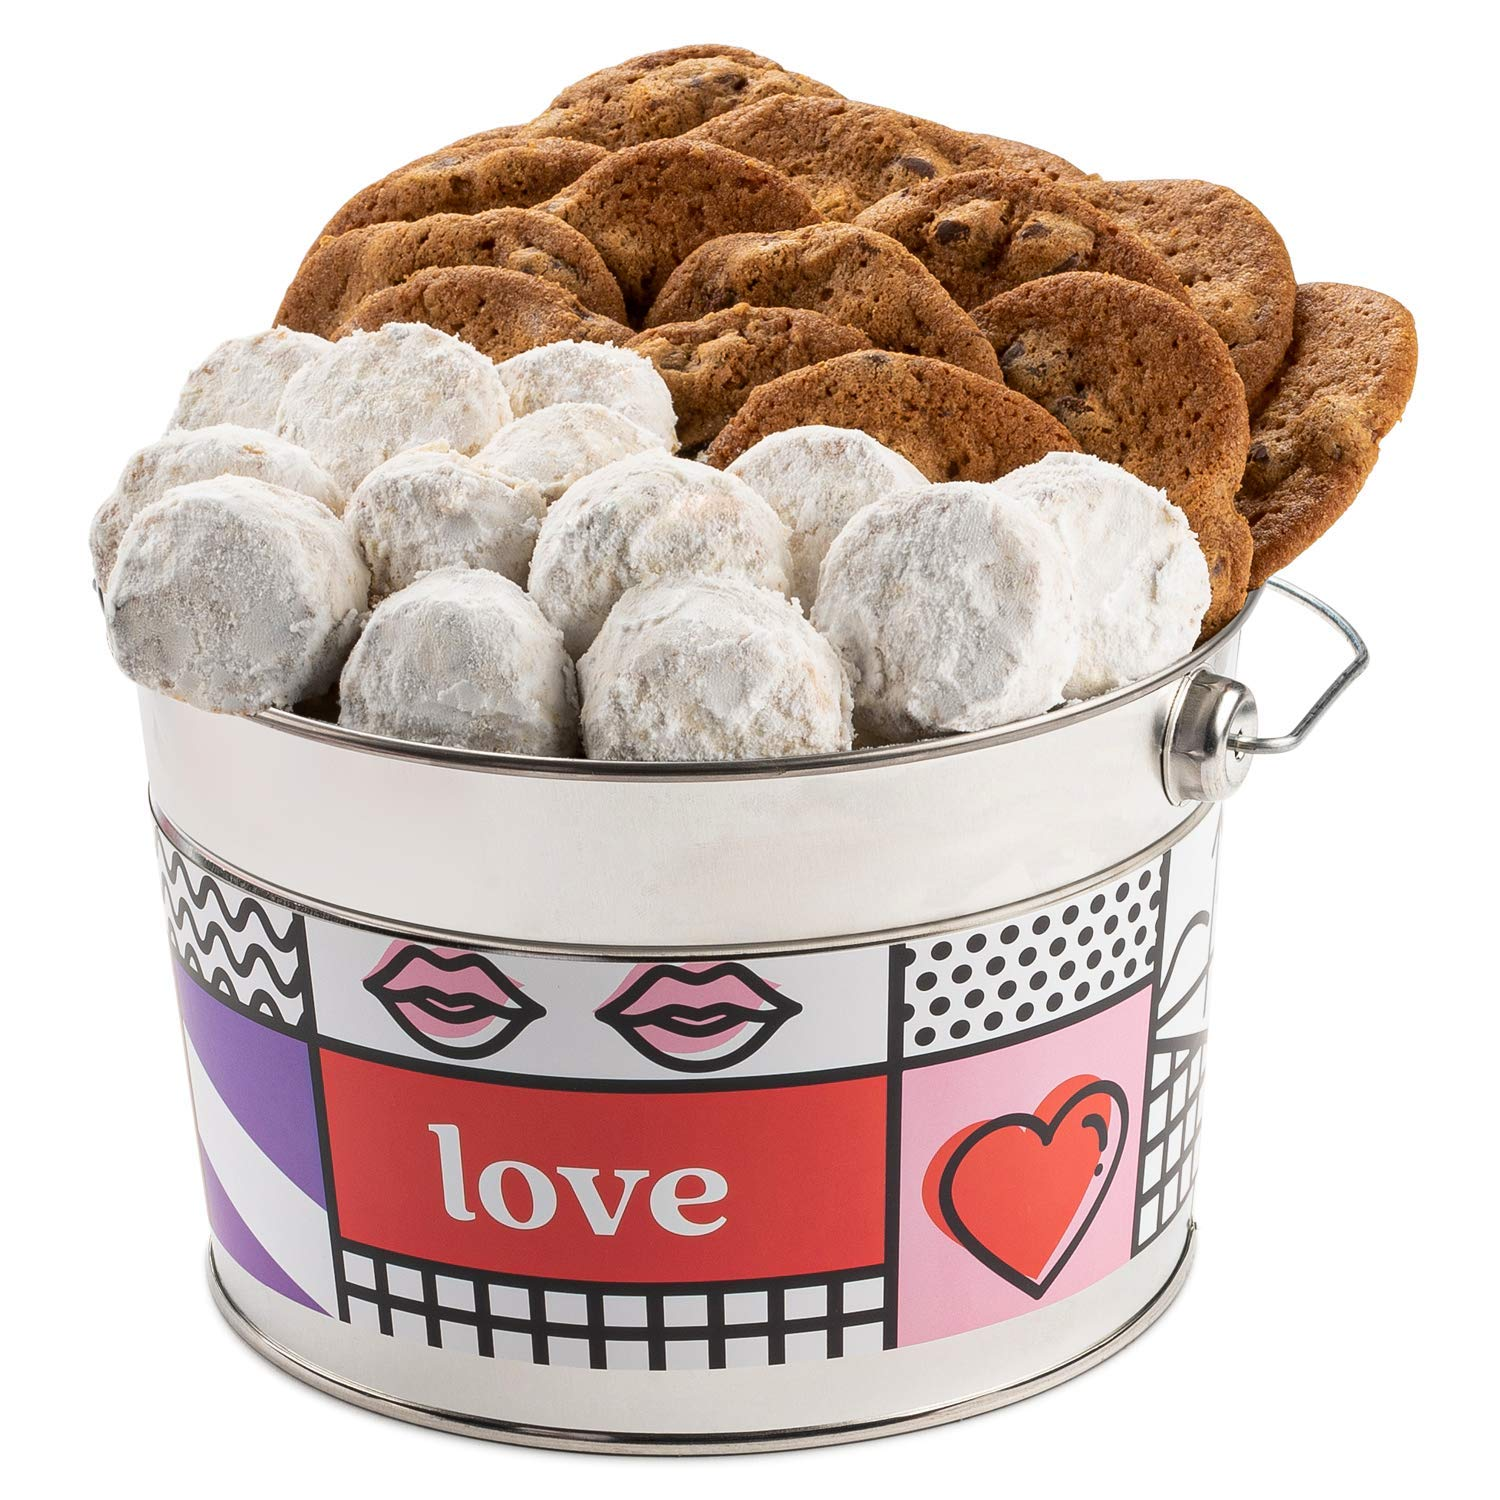 David's Cookies Valentine's Day Assorted Cookies Bucket – Thin Crispy Cookies and Pecan Meltaways Treats – Delicious Traditional Recipes – Decorated Bucket V-Day Cookies